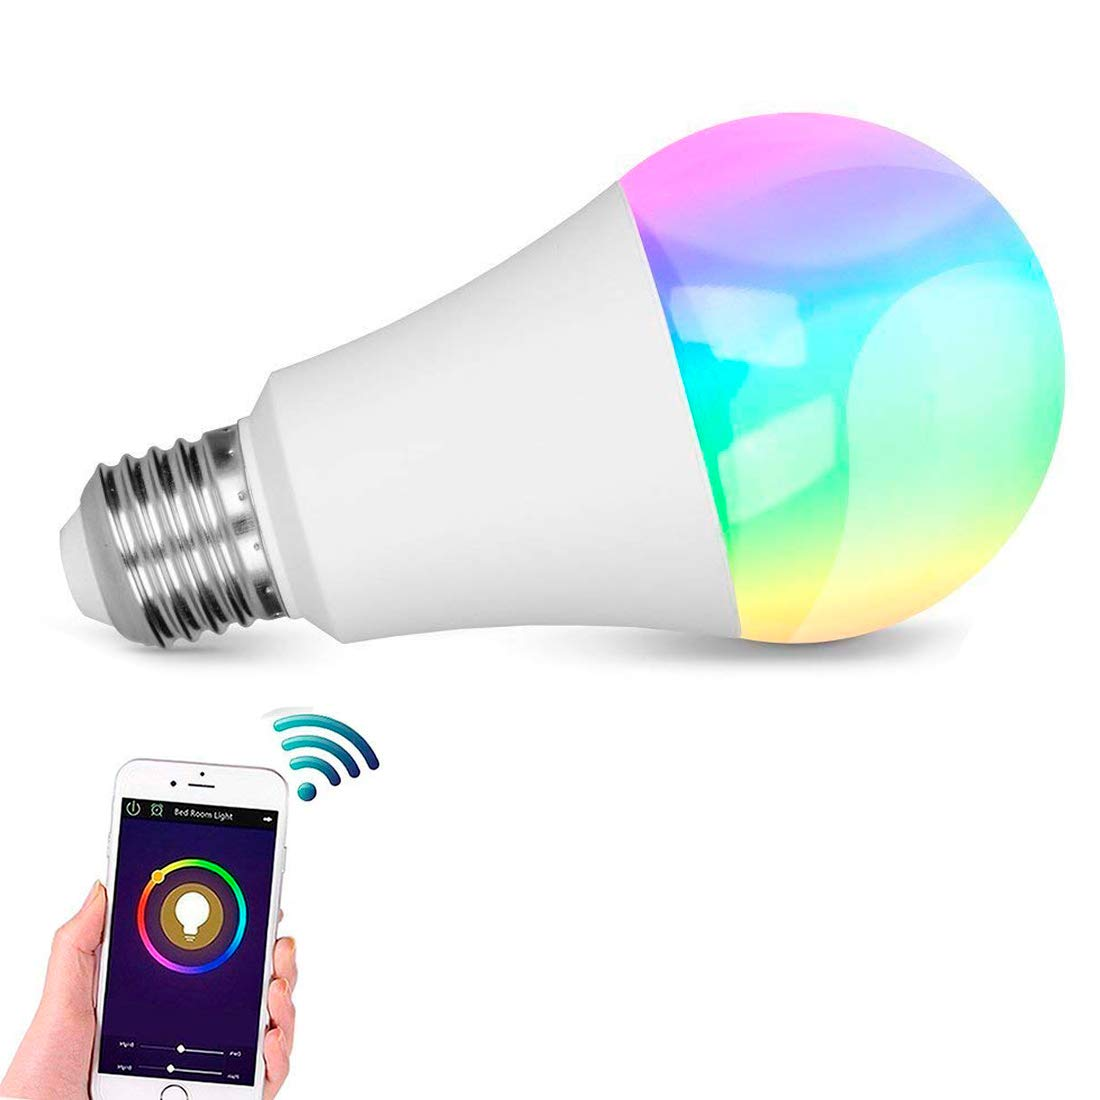 LovelyHome RGB 10W Smart LED Bulb